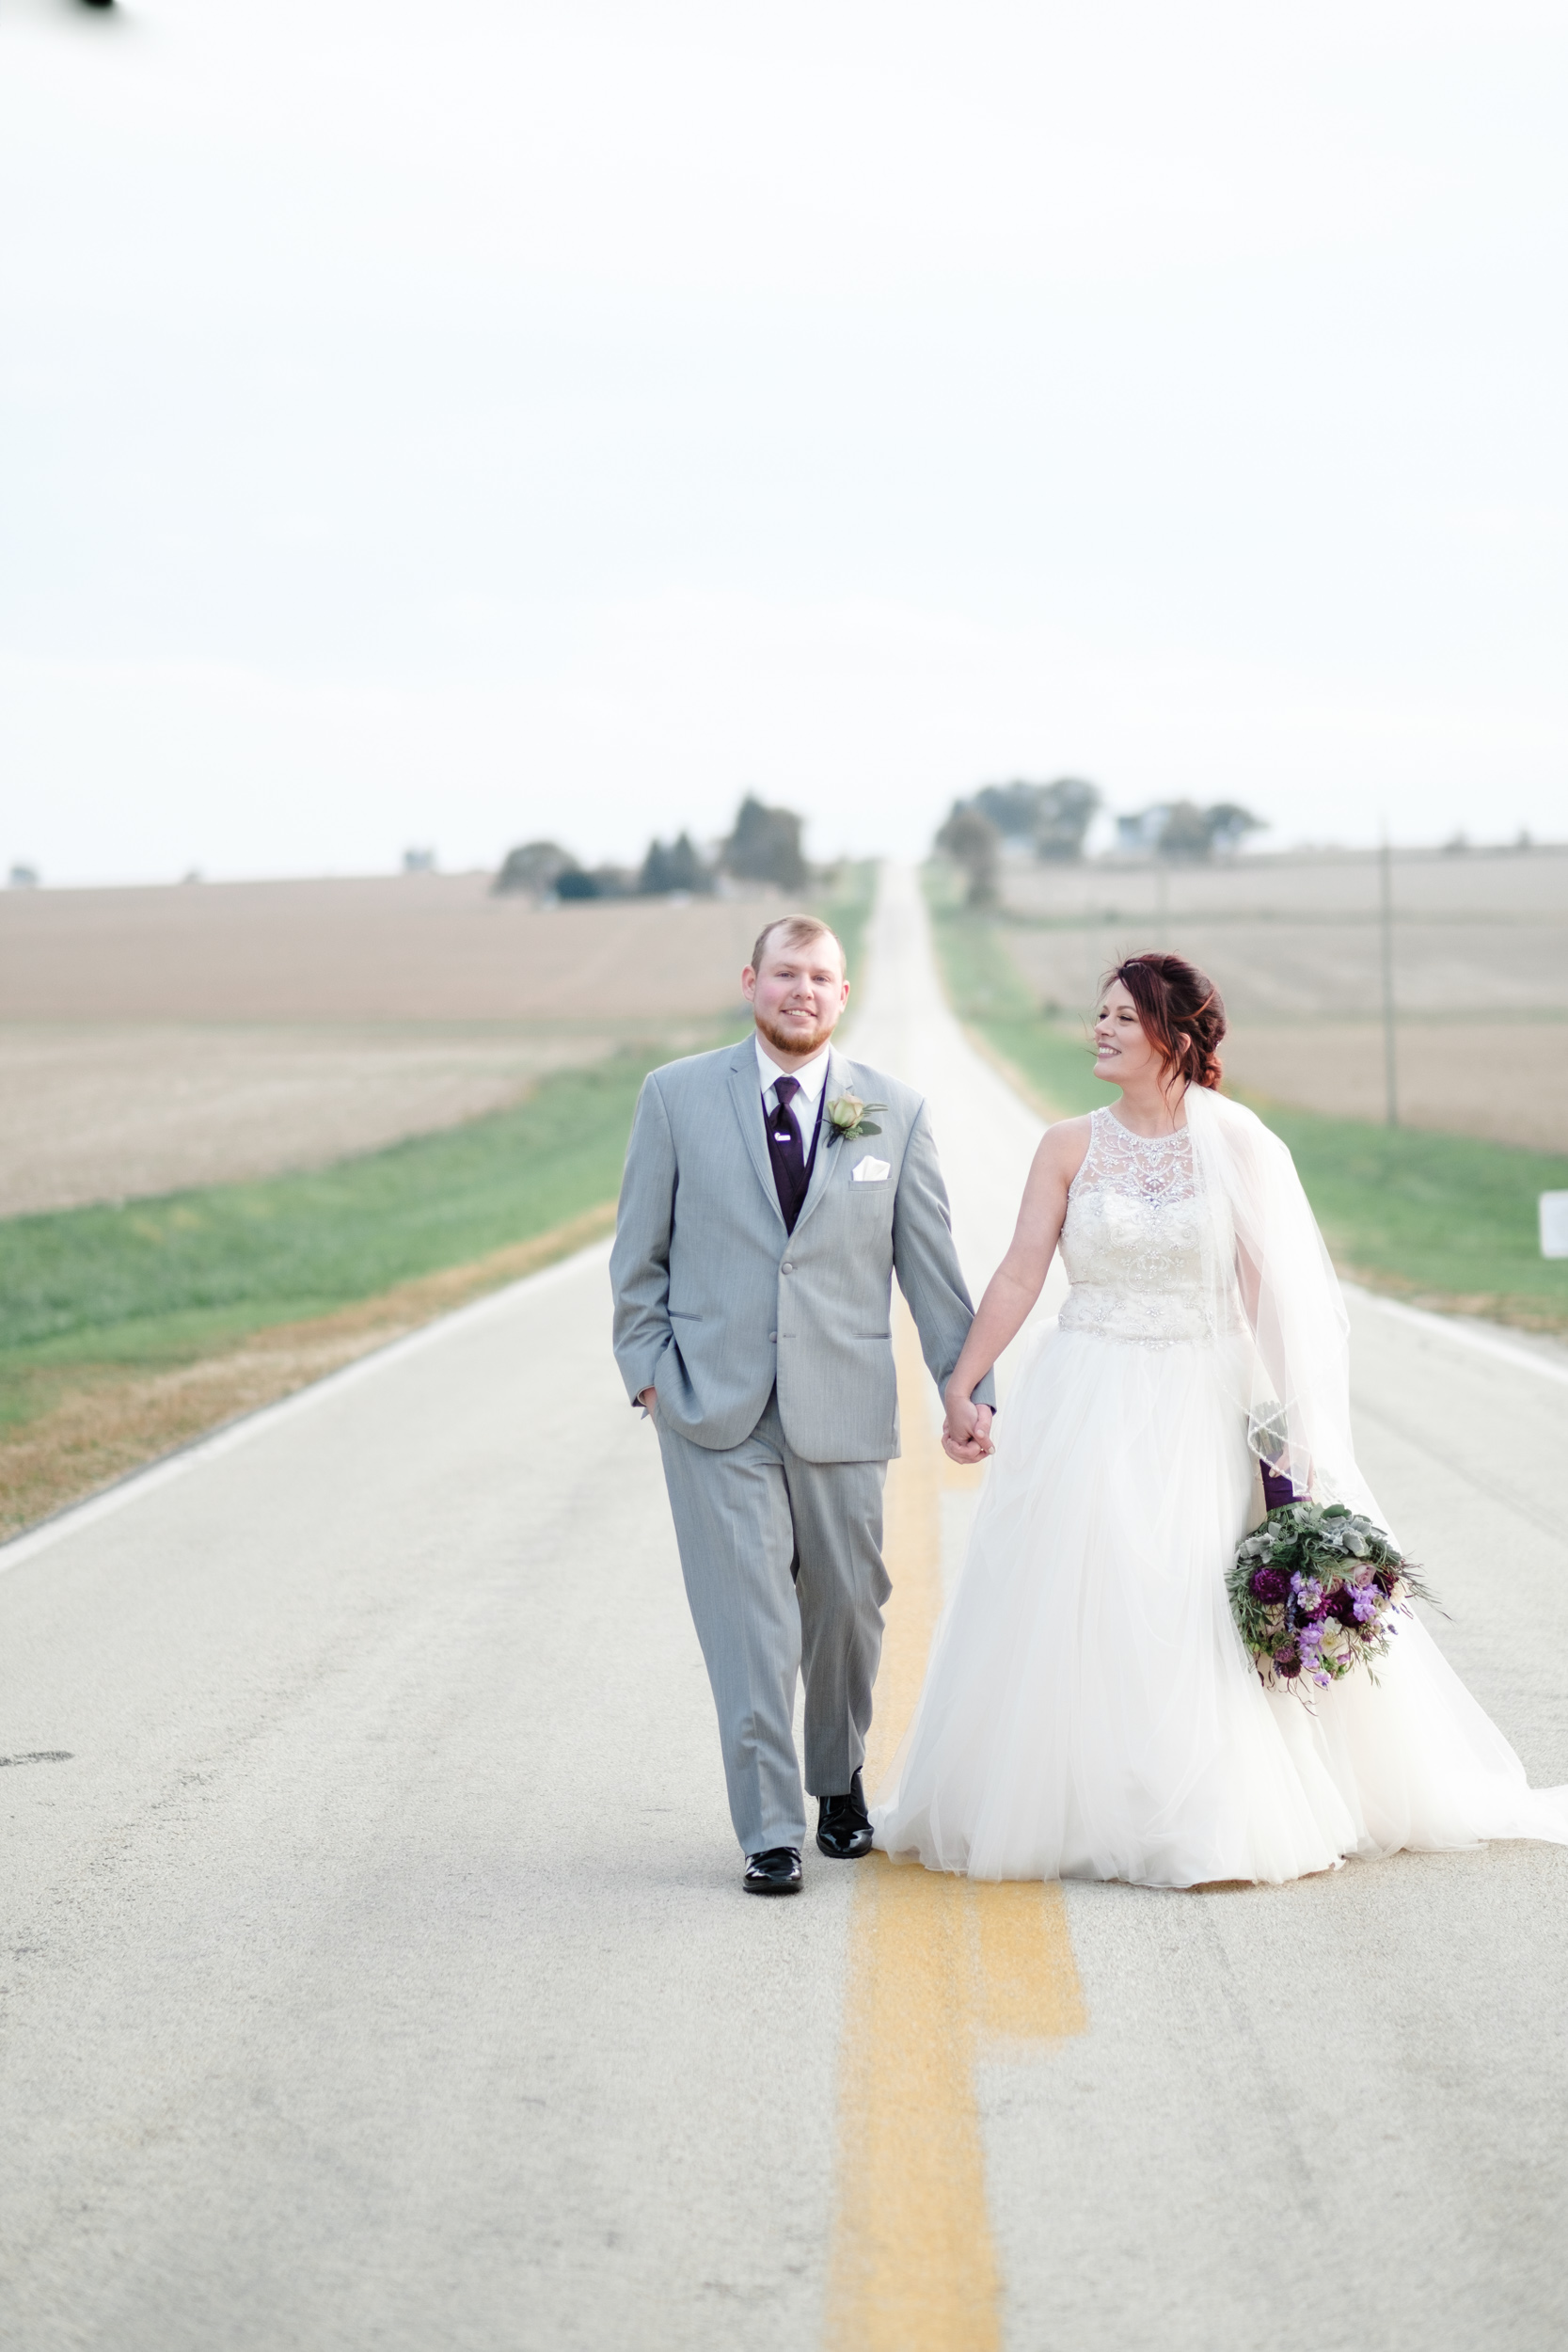 Andrea Caleb Happily Ever After Barn Wedding-37.jpg